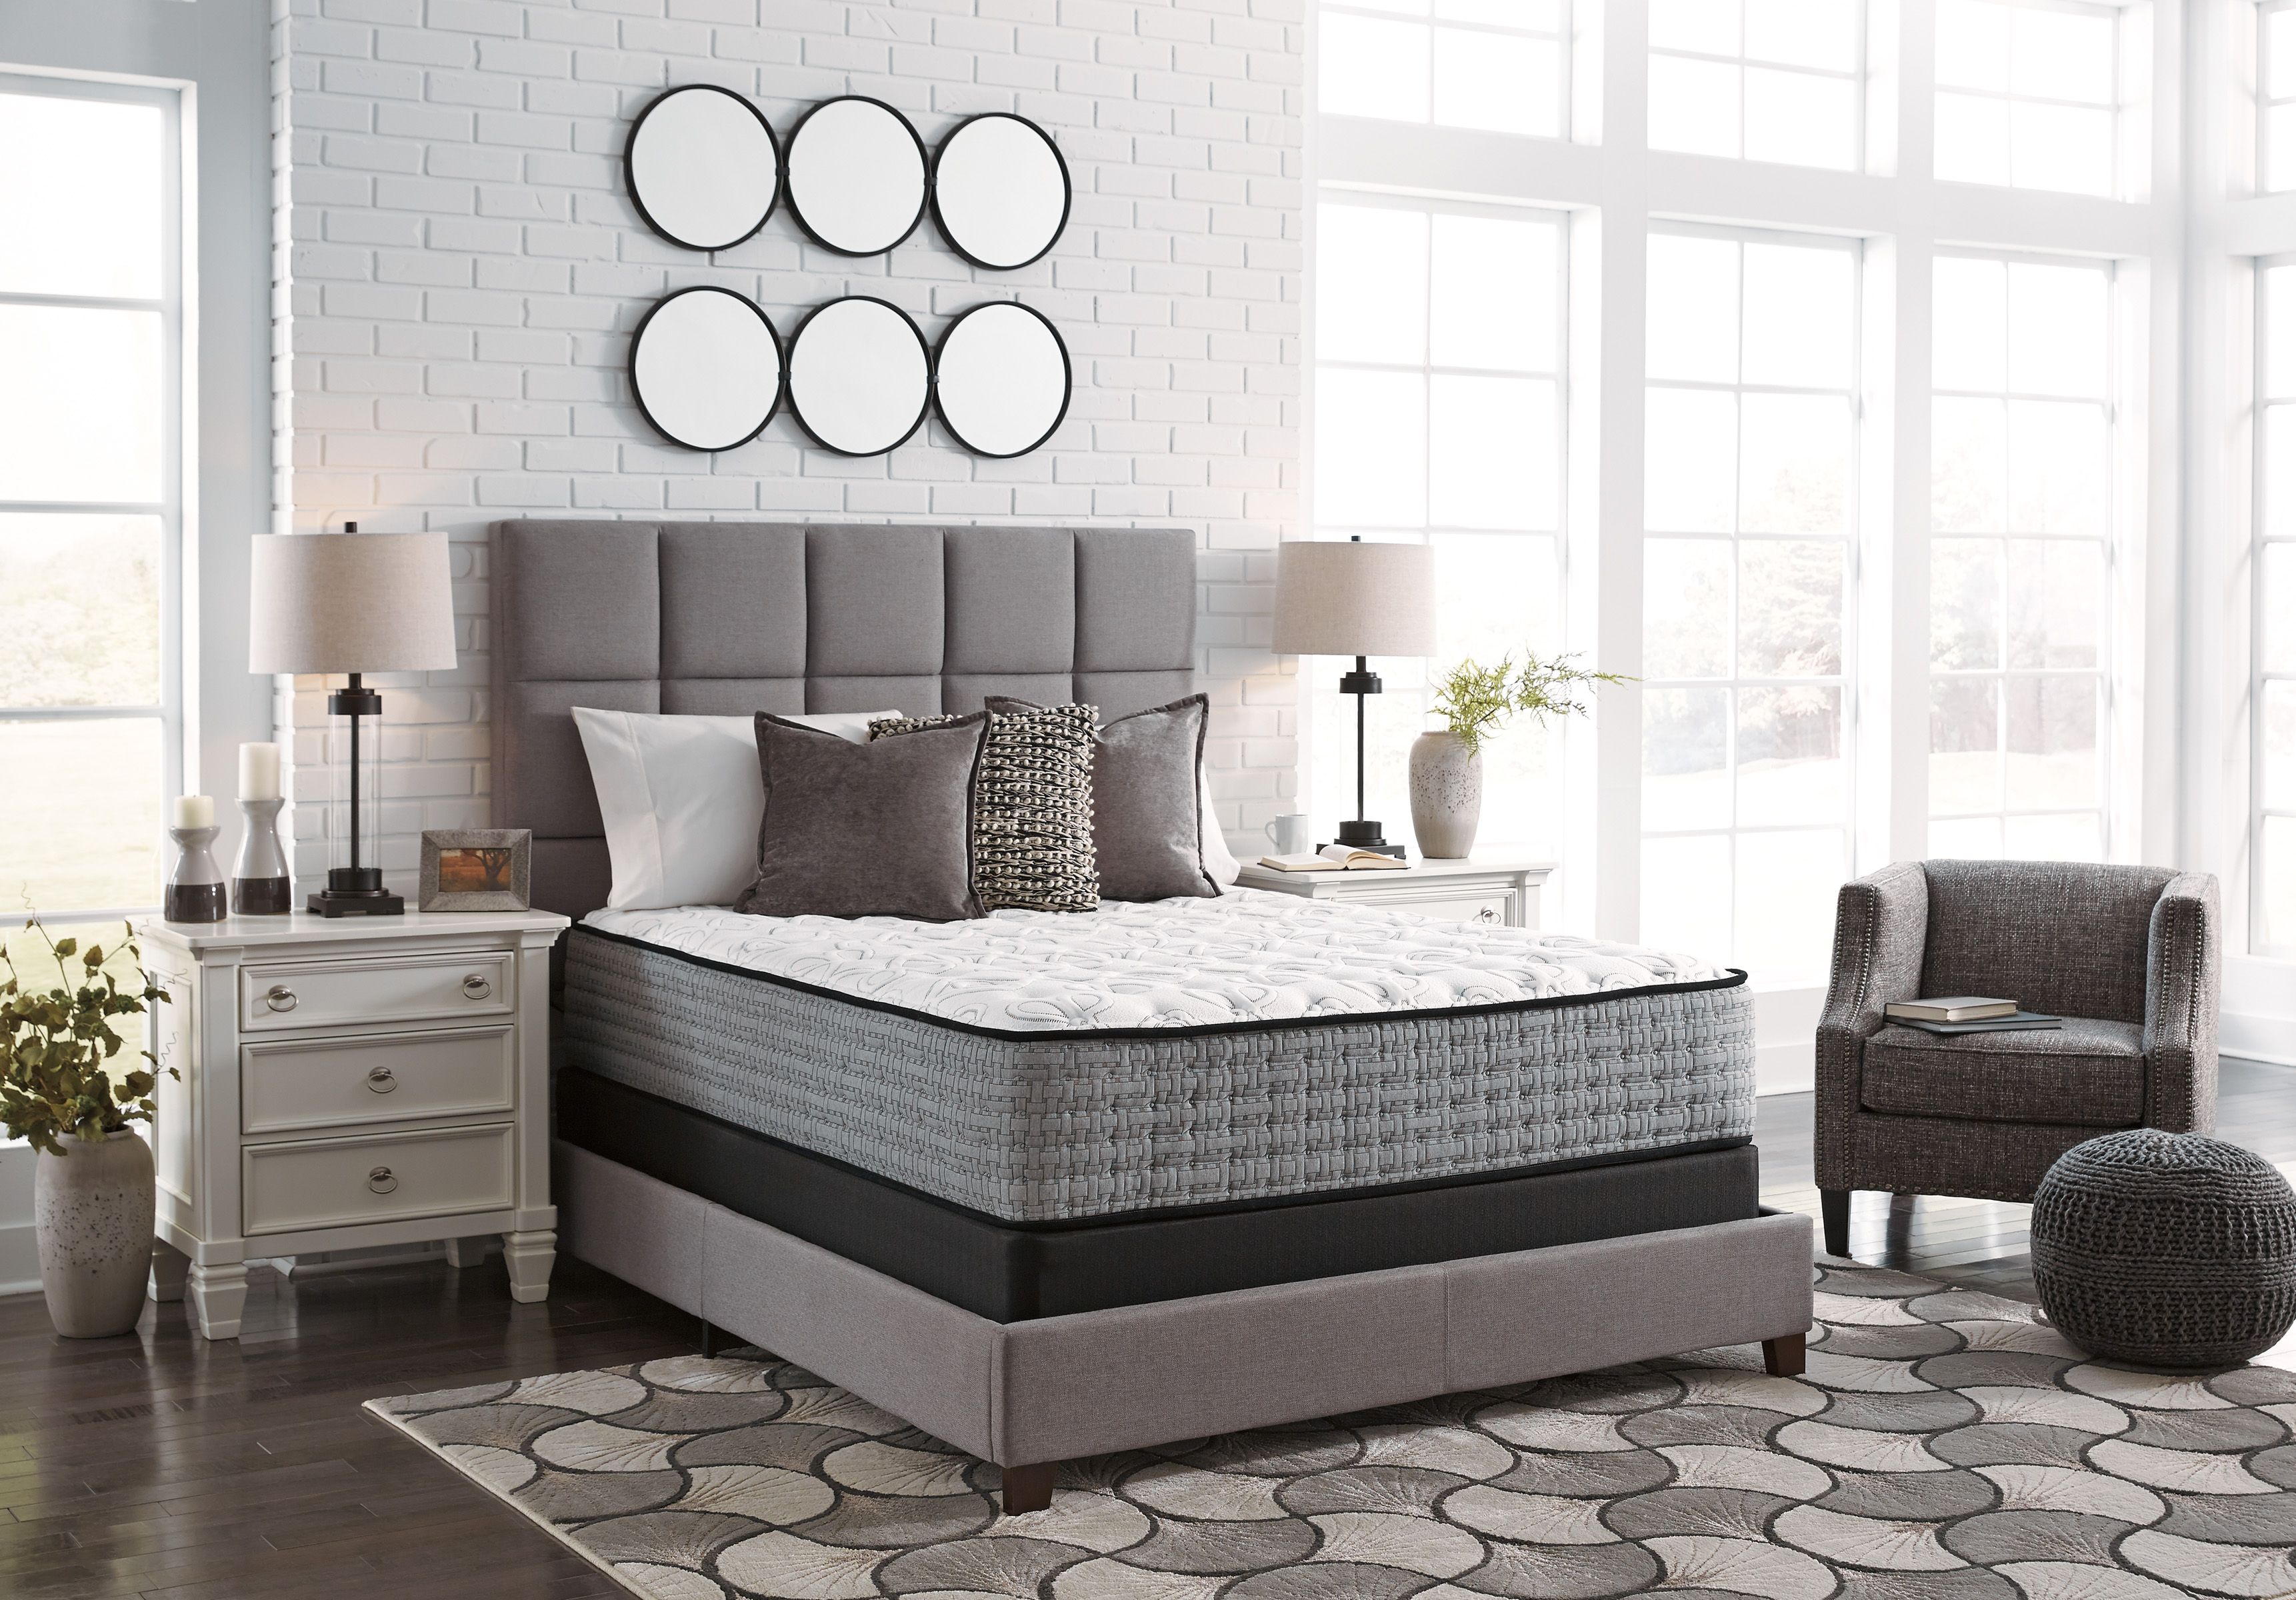 Ashley Manhattan Cal King Mattress Dallas TX | Mattress & Bed Frames ...